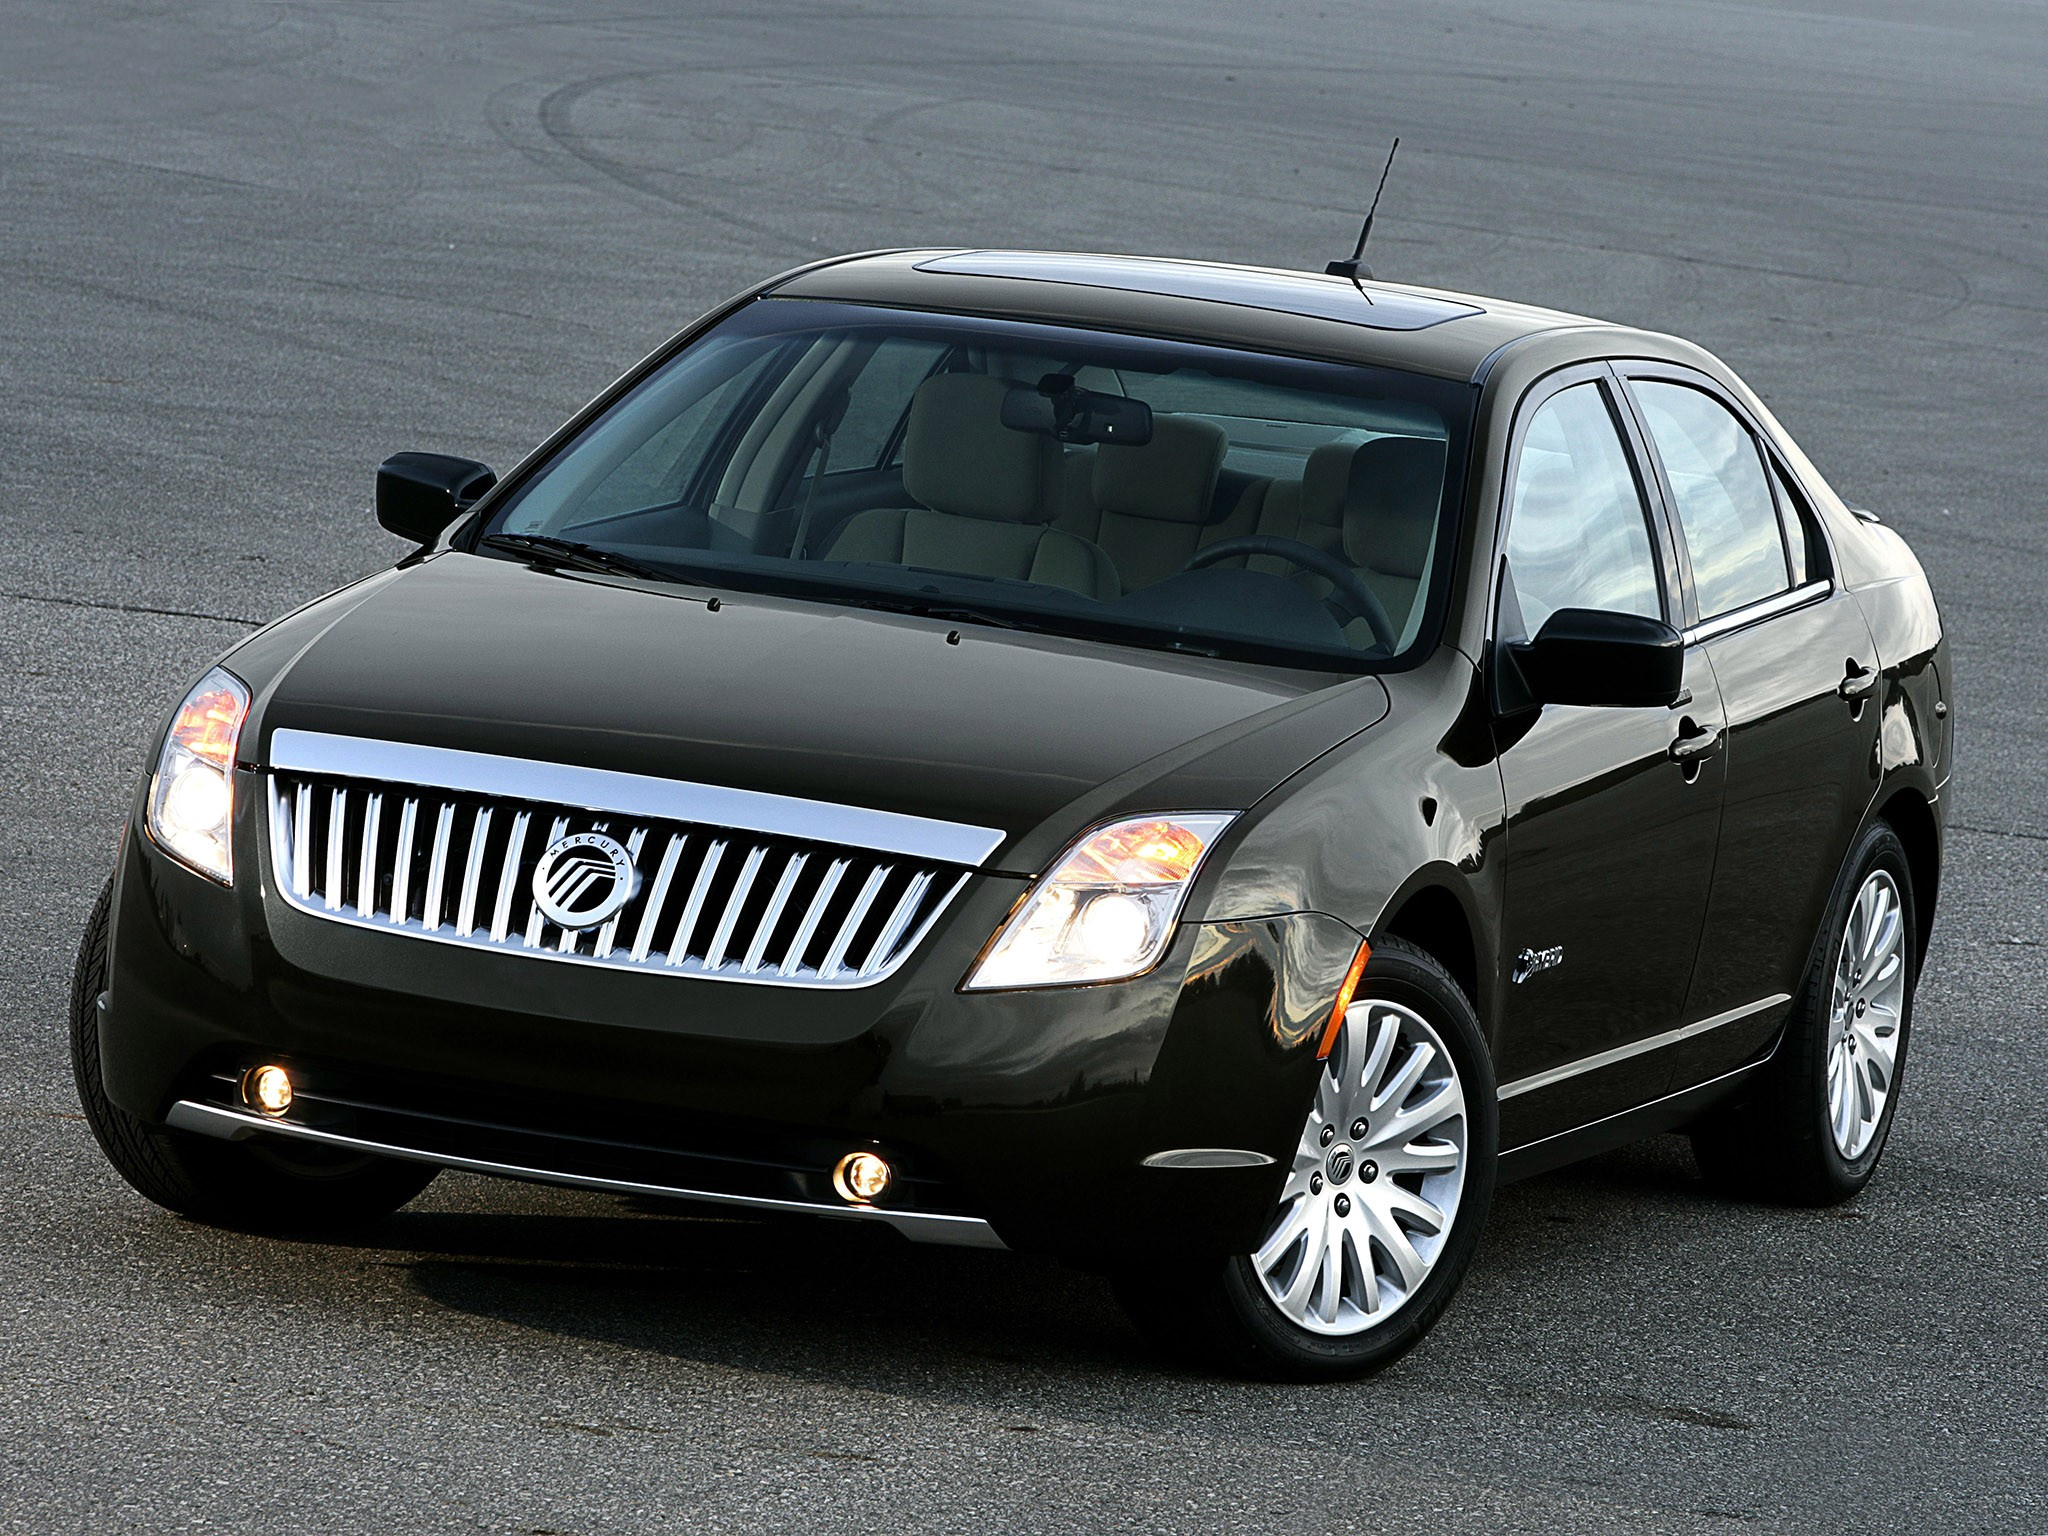 Flex Fuel Cars >> MERCURY Milan - 2009, 2010, 2011 - autoevolution